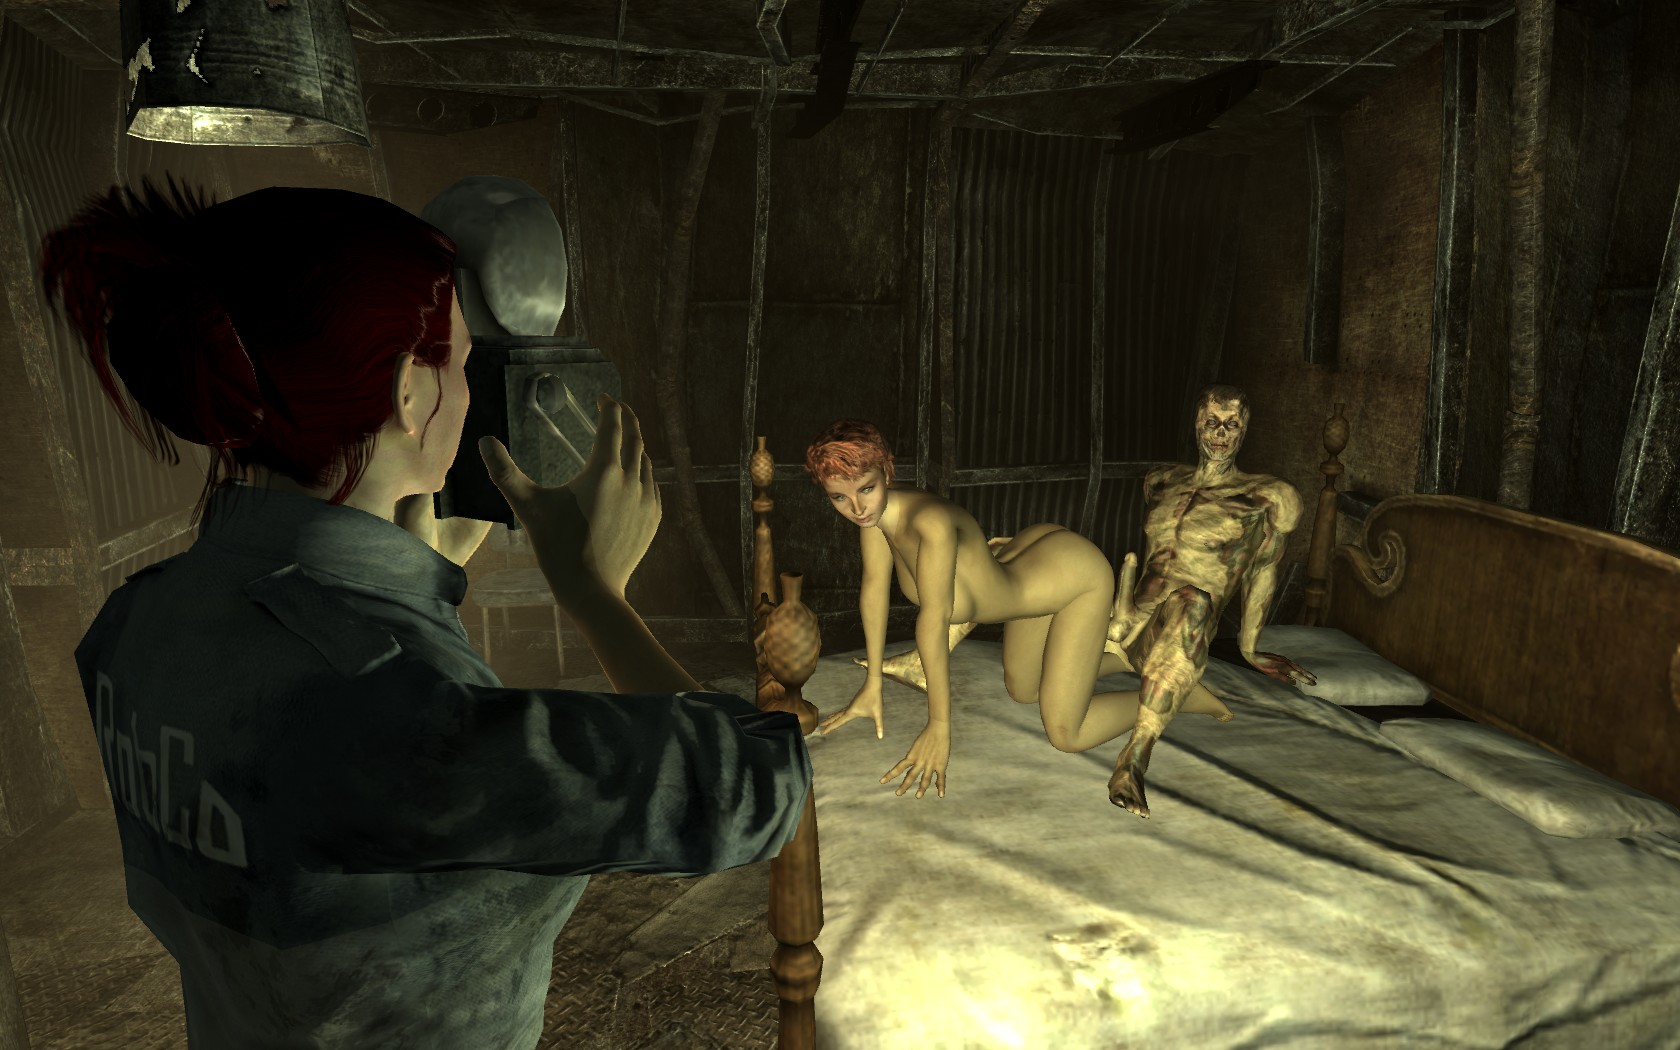 Fallout 3 erotic fanfic erotic photos